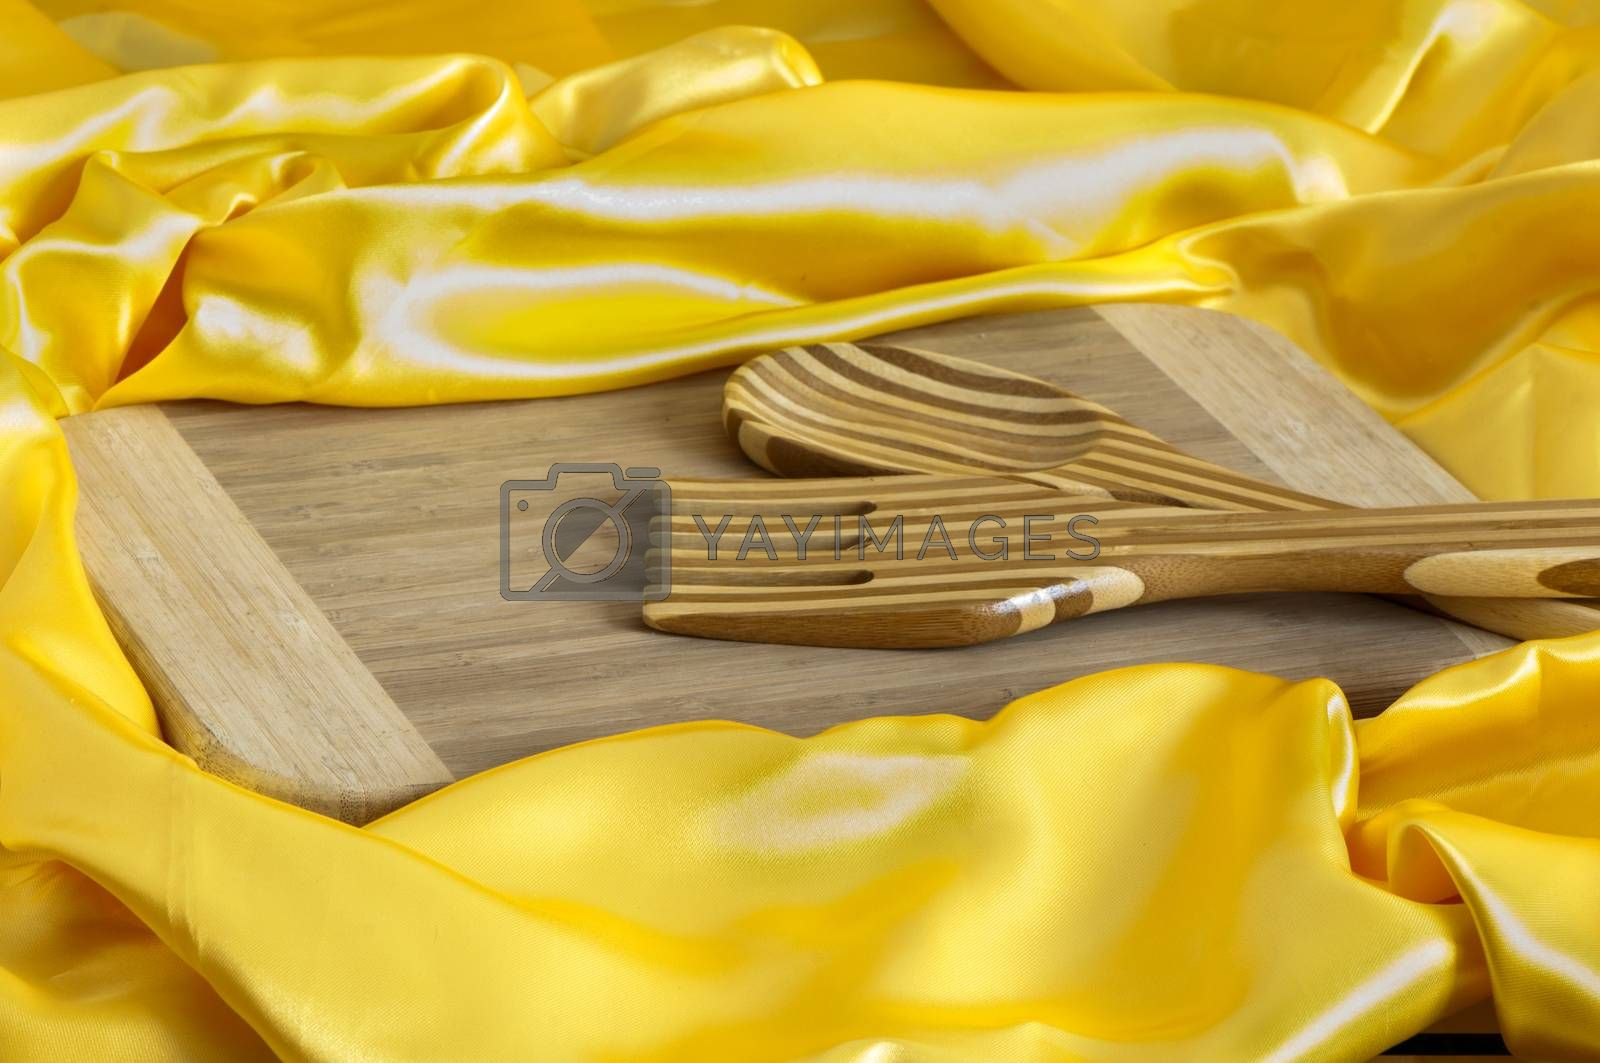 a cutlery and a bamboo cutting board